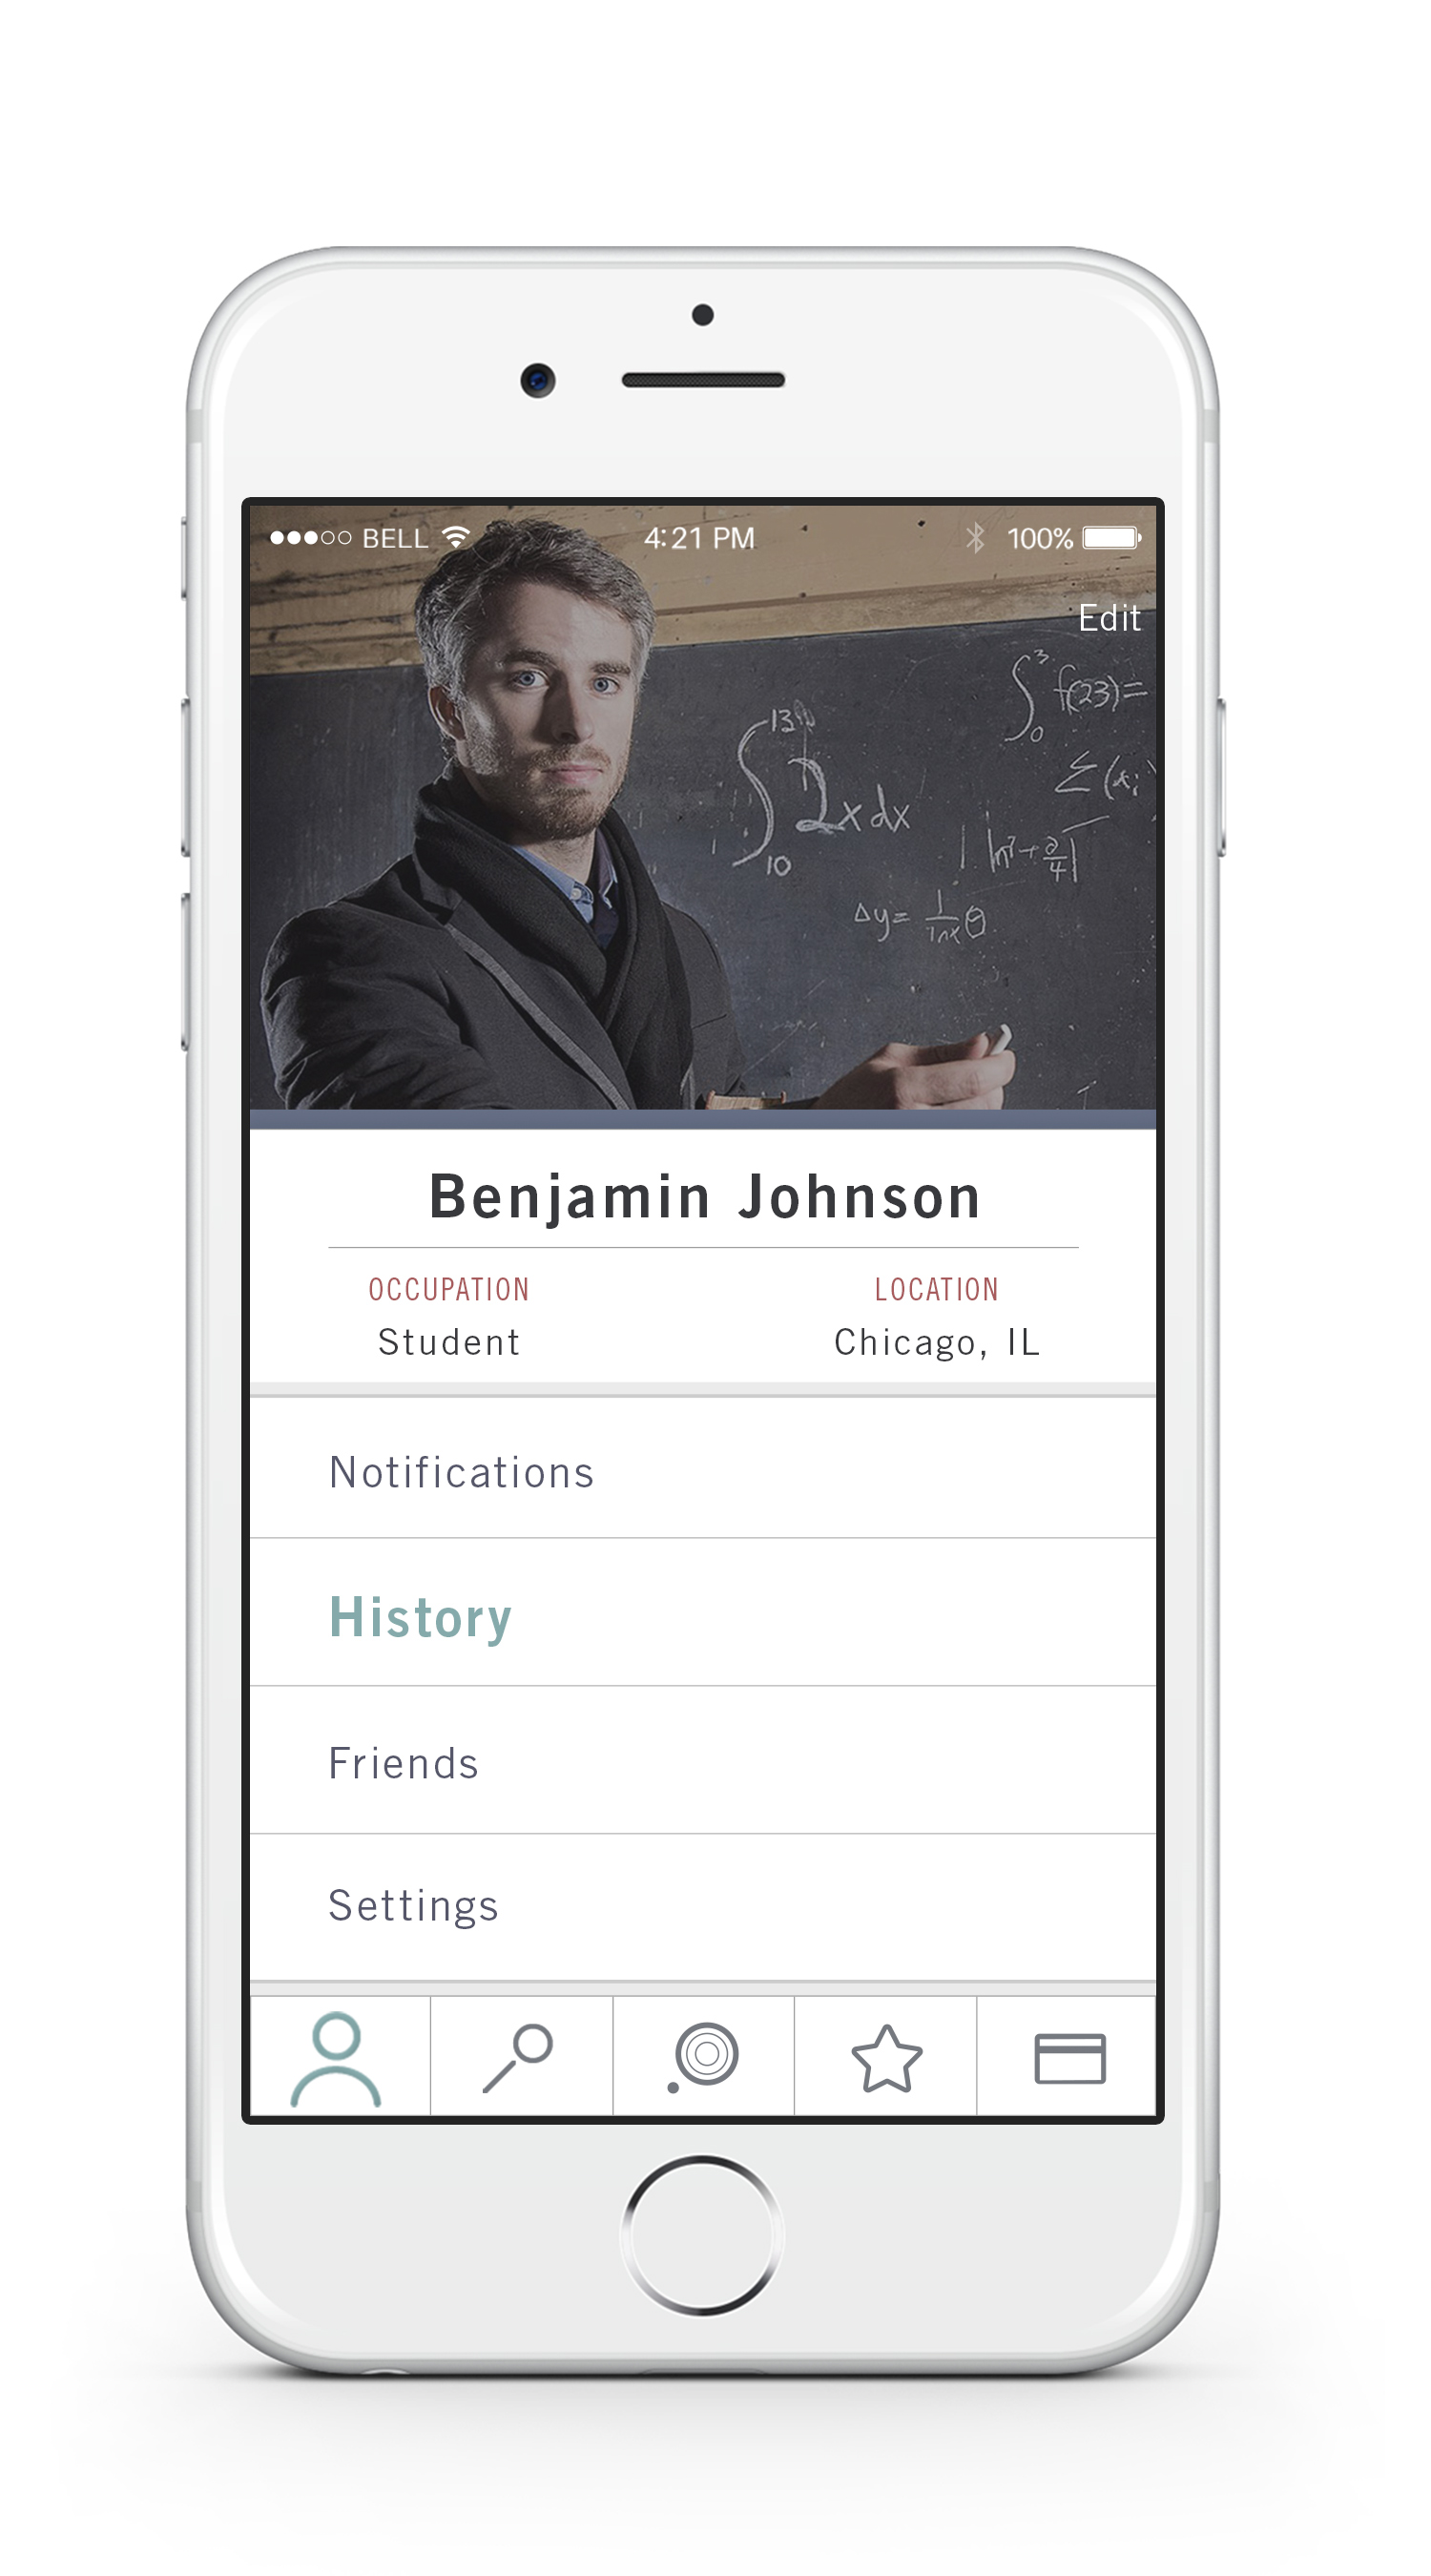 Profile    —   The profile tab provides information about the user as well as shows notifications, past visits to study spots, as well as friends and settings.